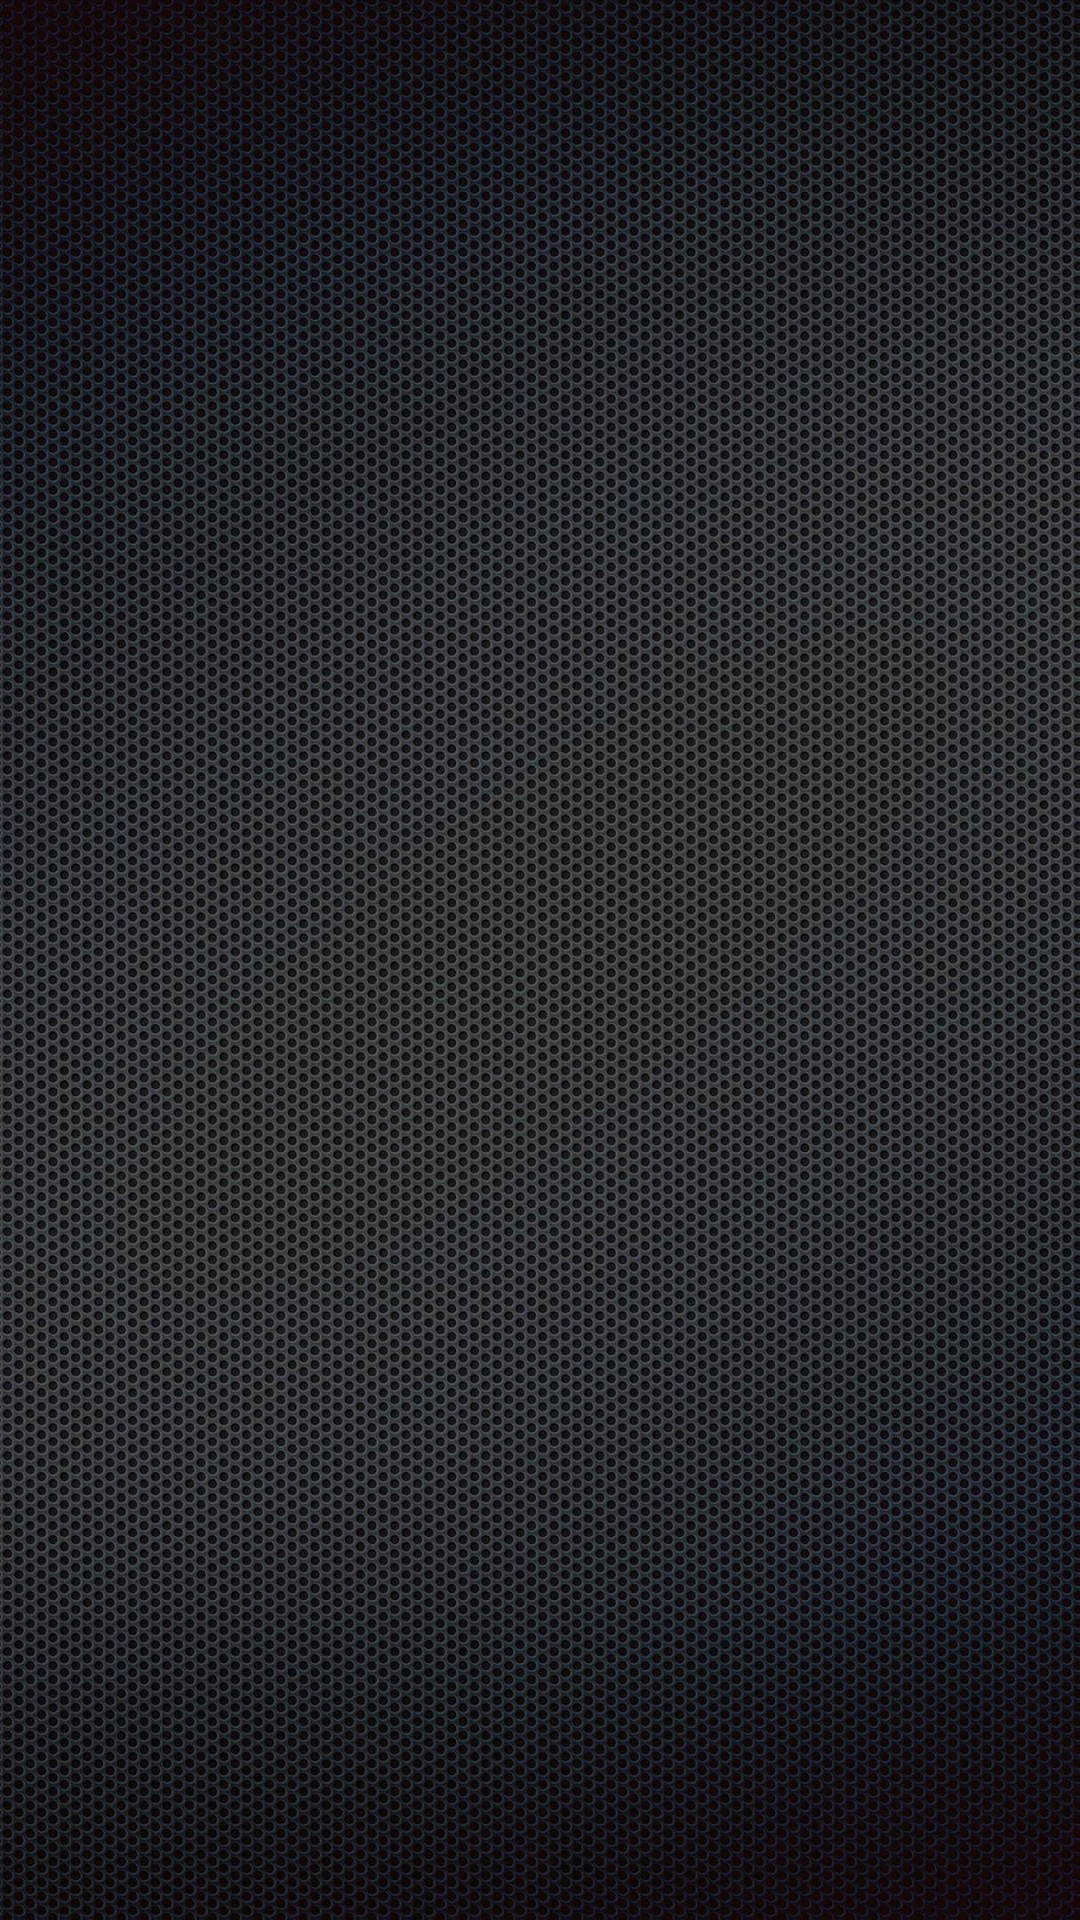 Black Grill Texture Wallpaper for SONY Xperia Z1